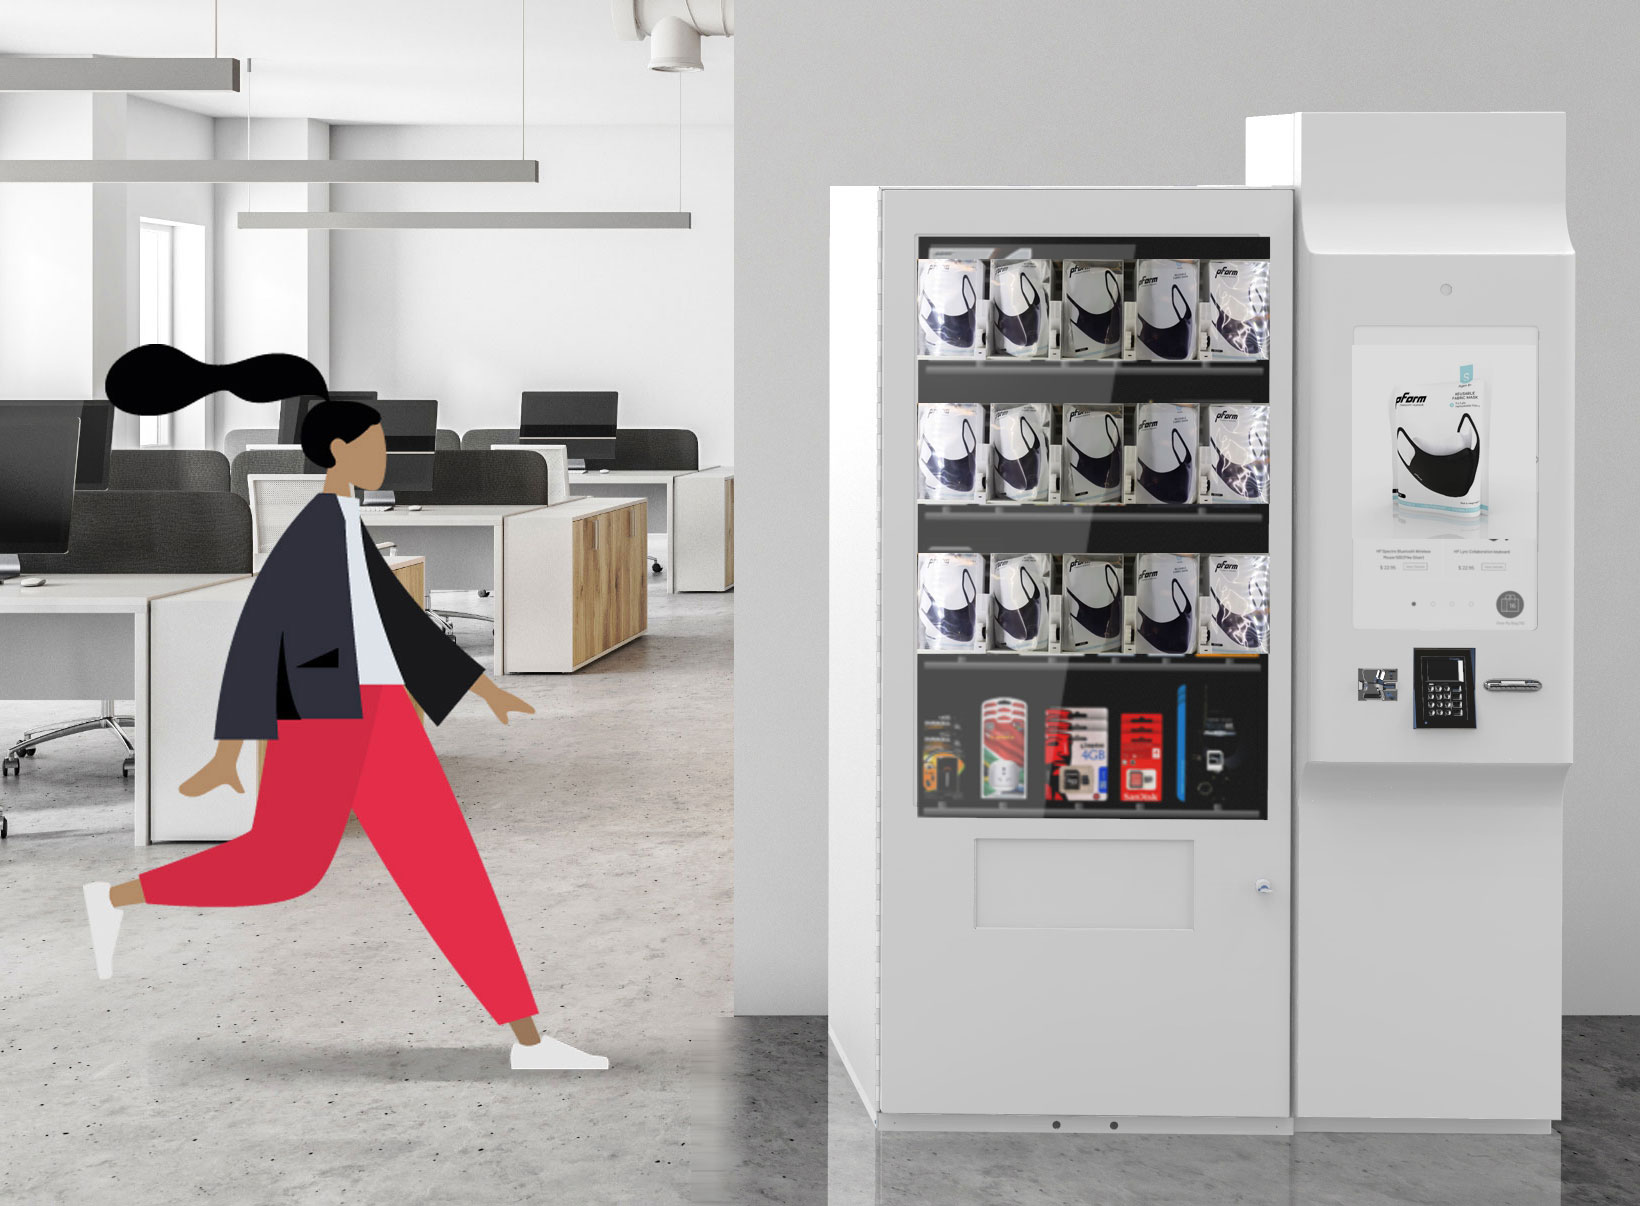 Signifi Releases PPE Dispensing & UV Locker Solutions to help Combat COVID-19 in the Workplace